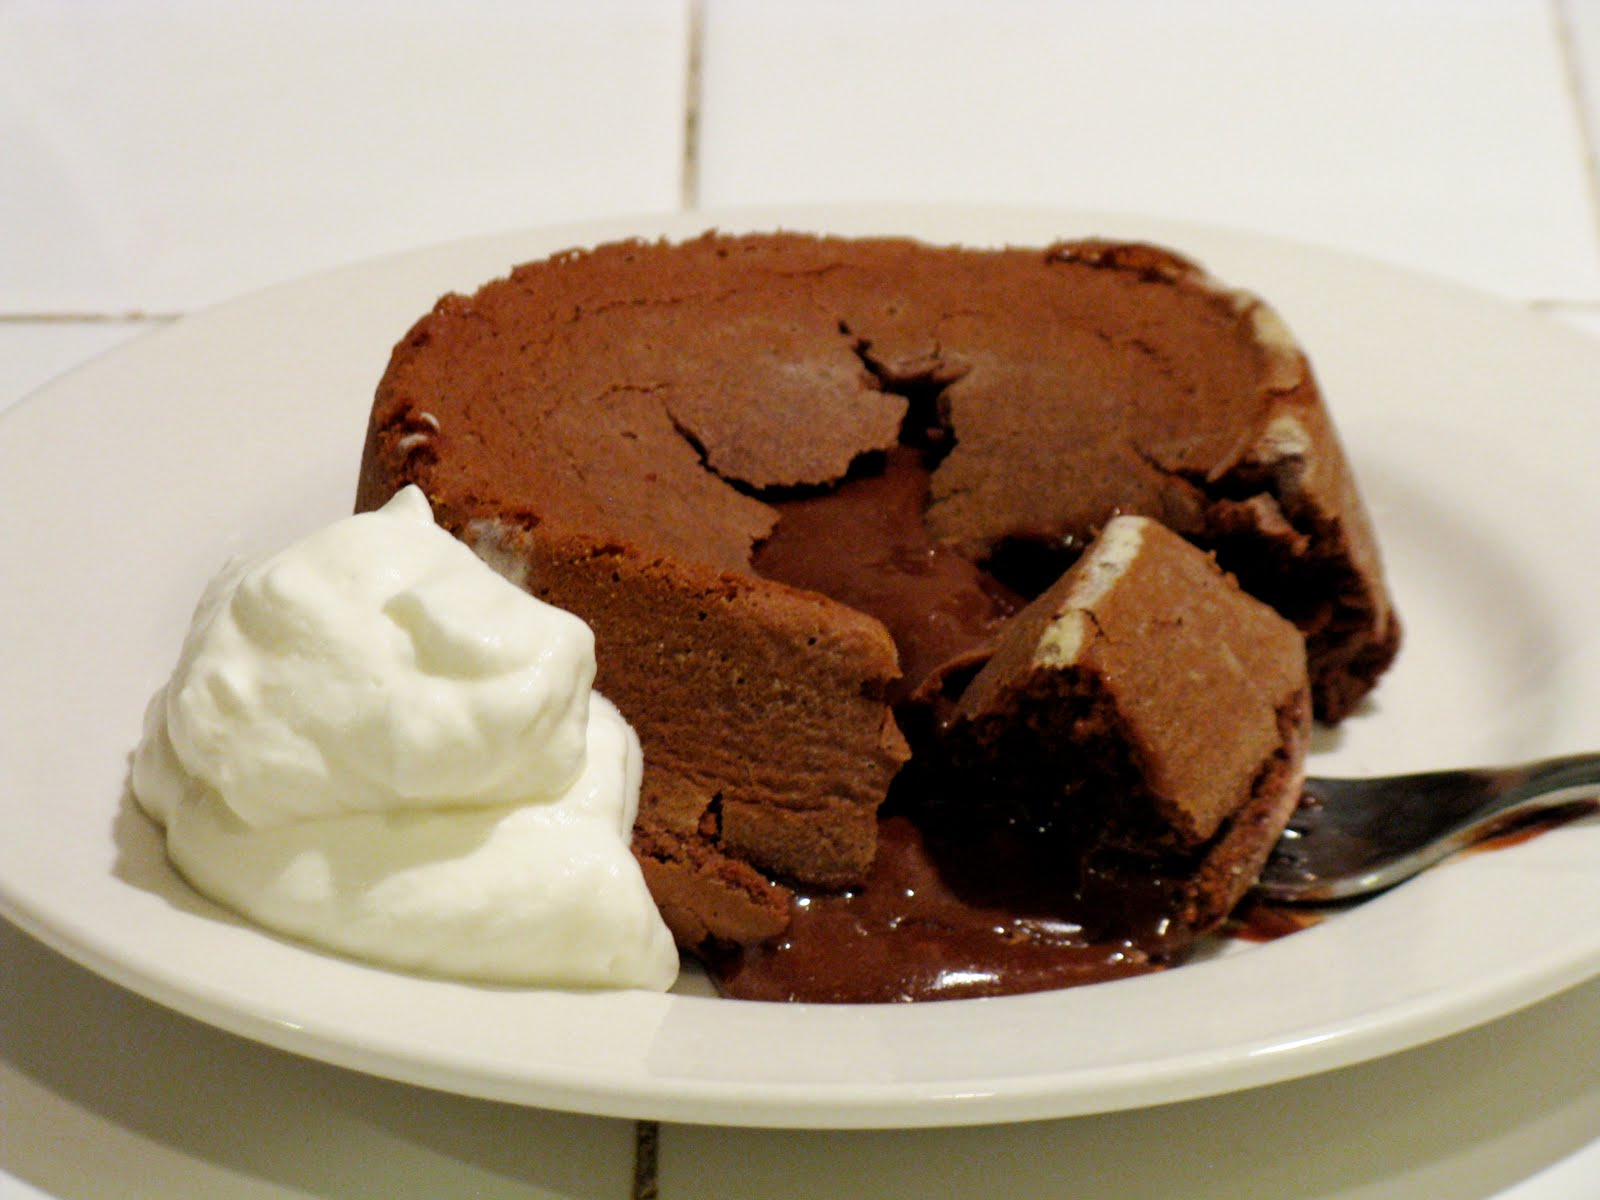 The Cilantropist: Molten Chocolate Lava Cake